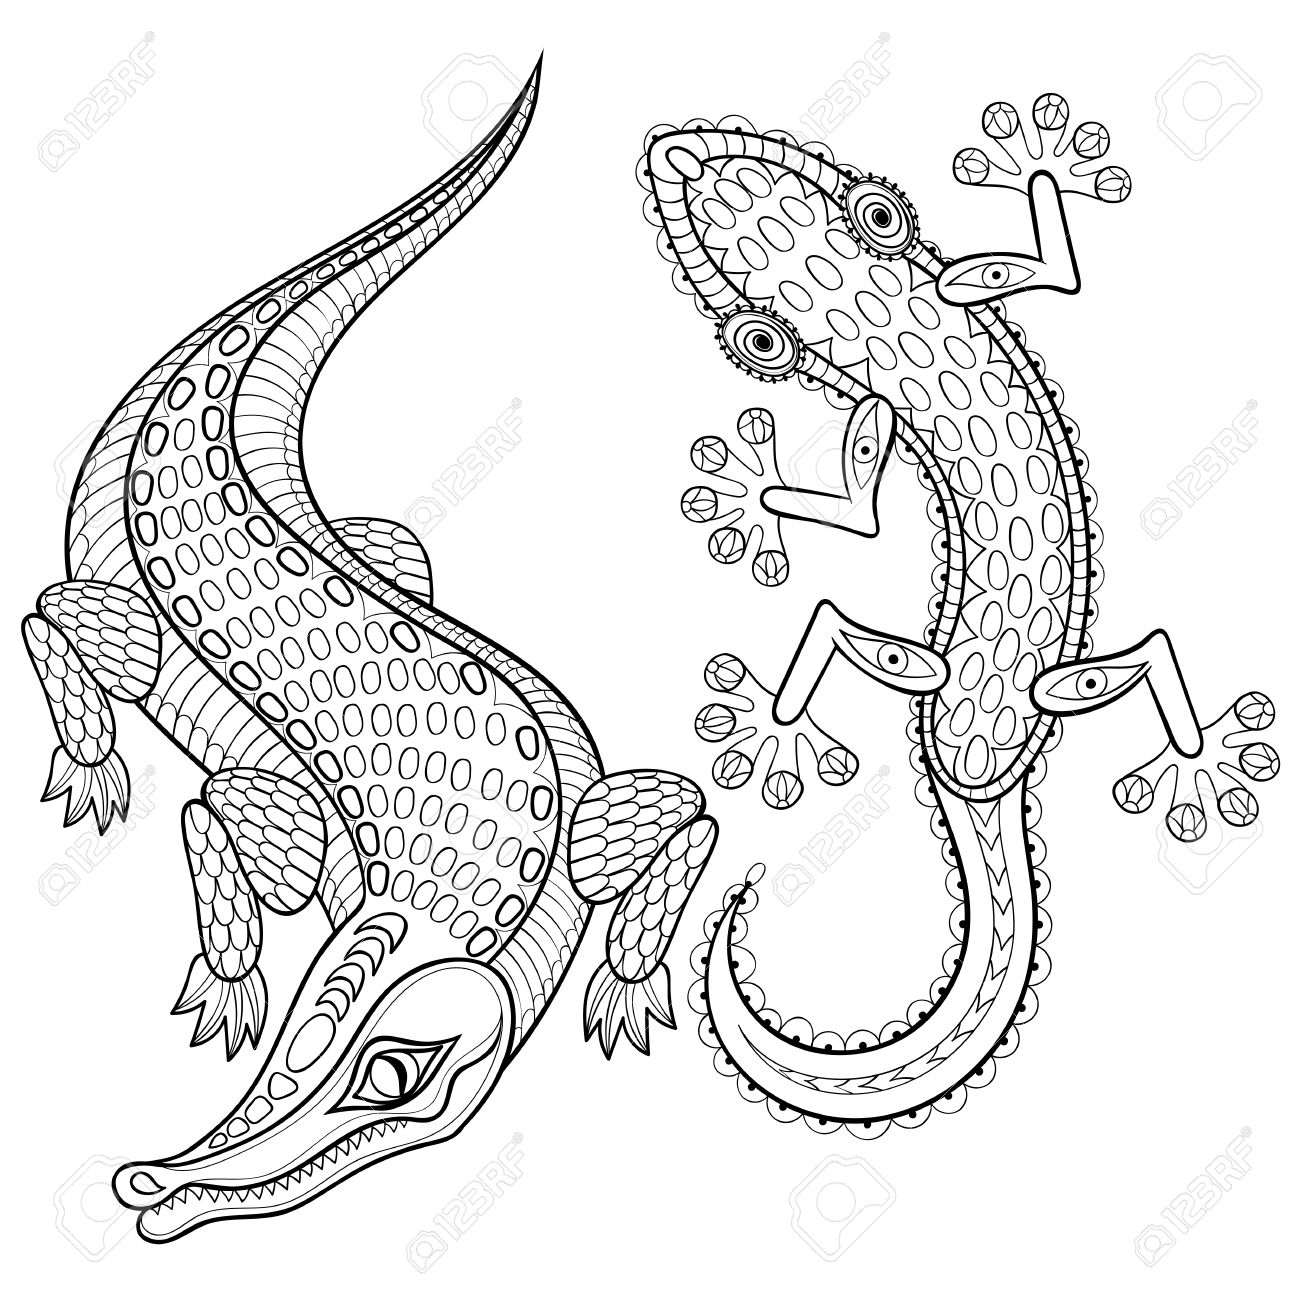 1300x1300 Hand Drawn Zentangled Crocodile And Lizard For Adult Coloring